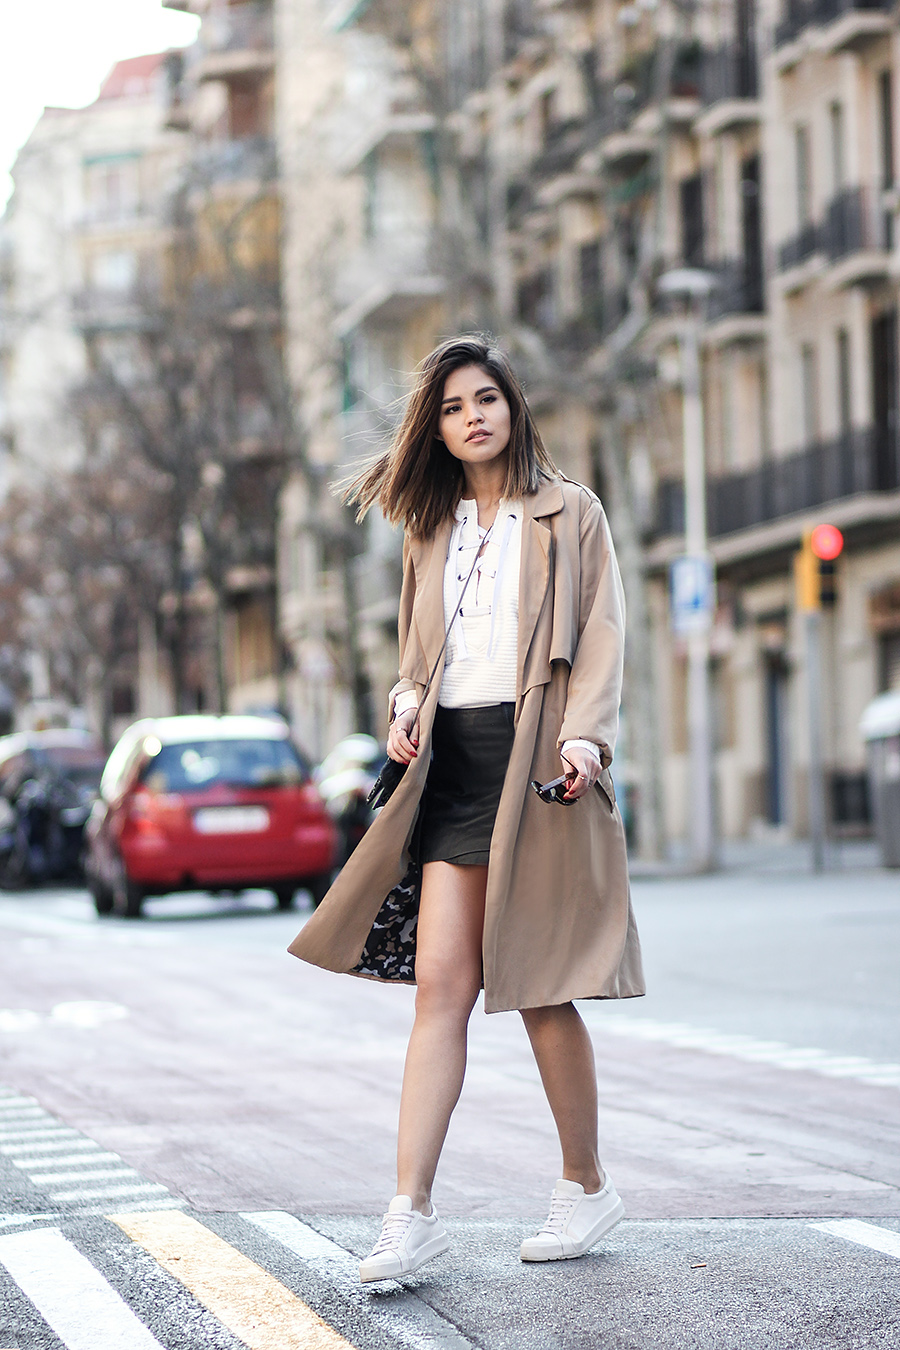 Adriana Gastélum pairs a lace up sweater with a mini skirt and a camel coloured trench coat to create a sophisticated and stylish aesthetic for everyday wear. Sweater: Shein, Coat: Zara, Skirt: Maje, Sneakers: Jil Sander.